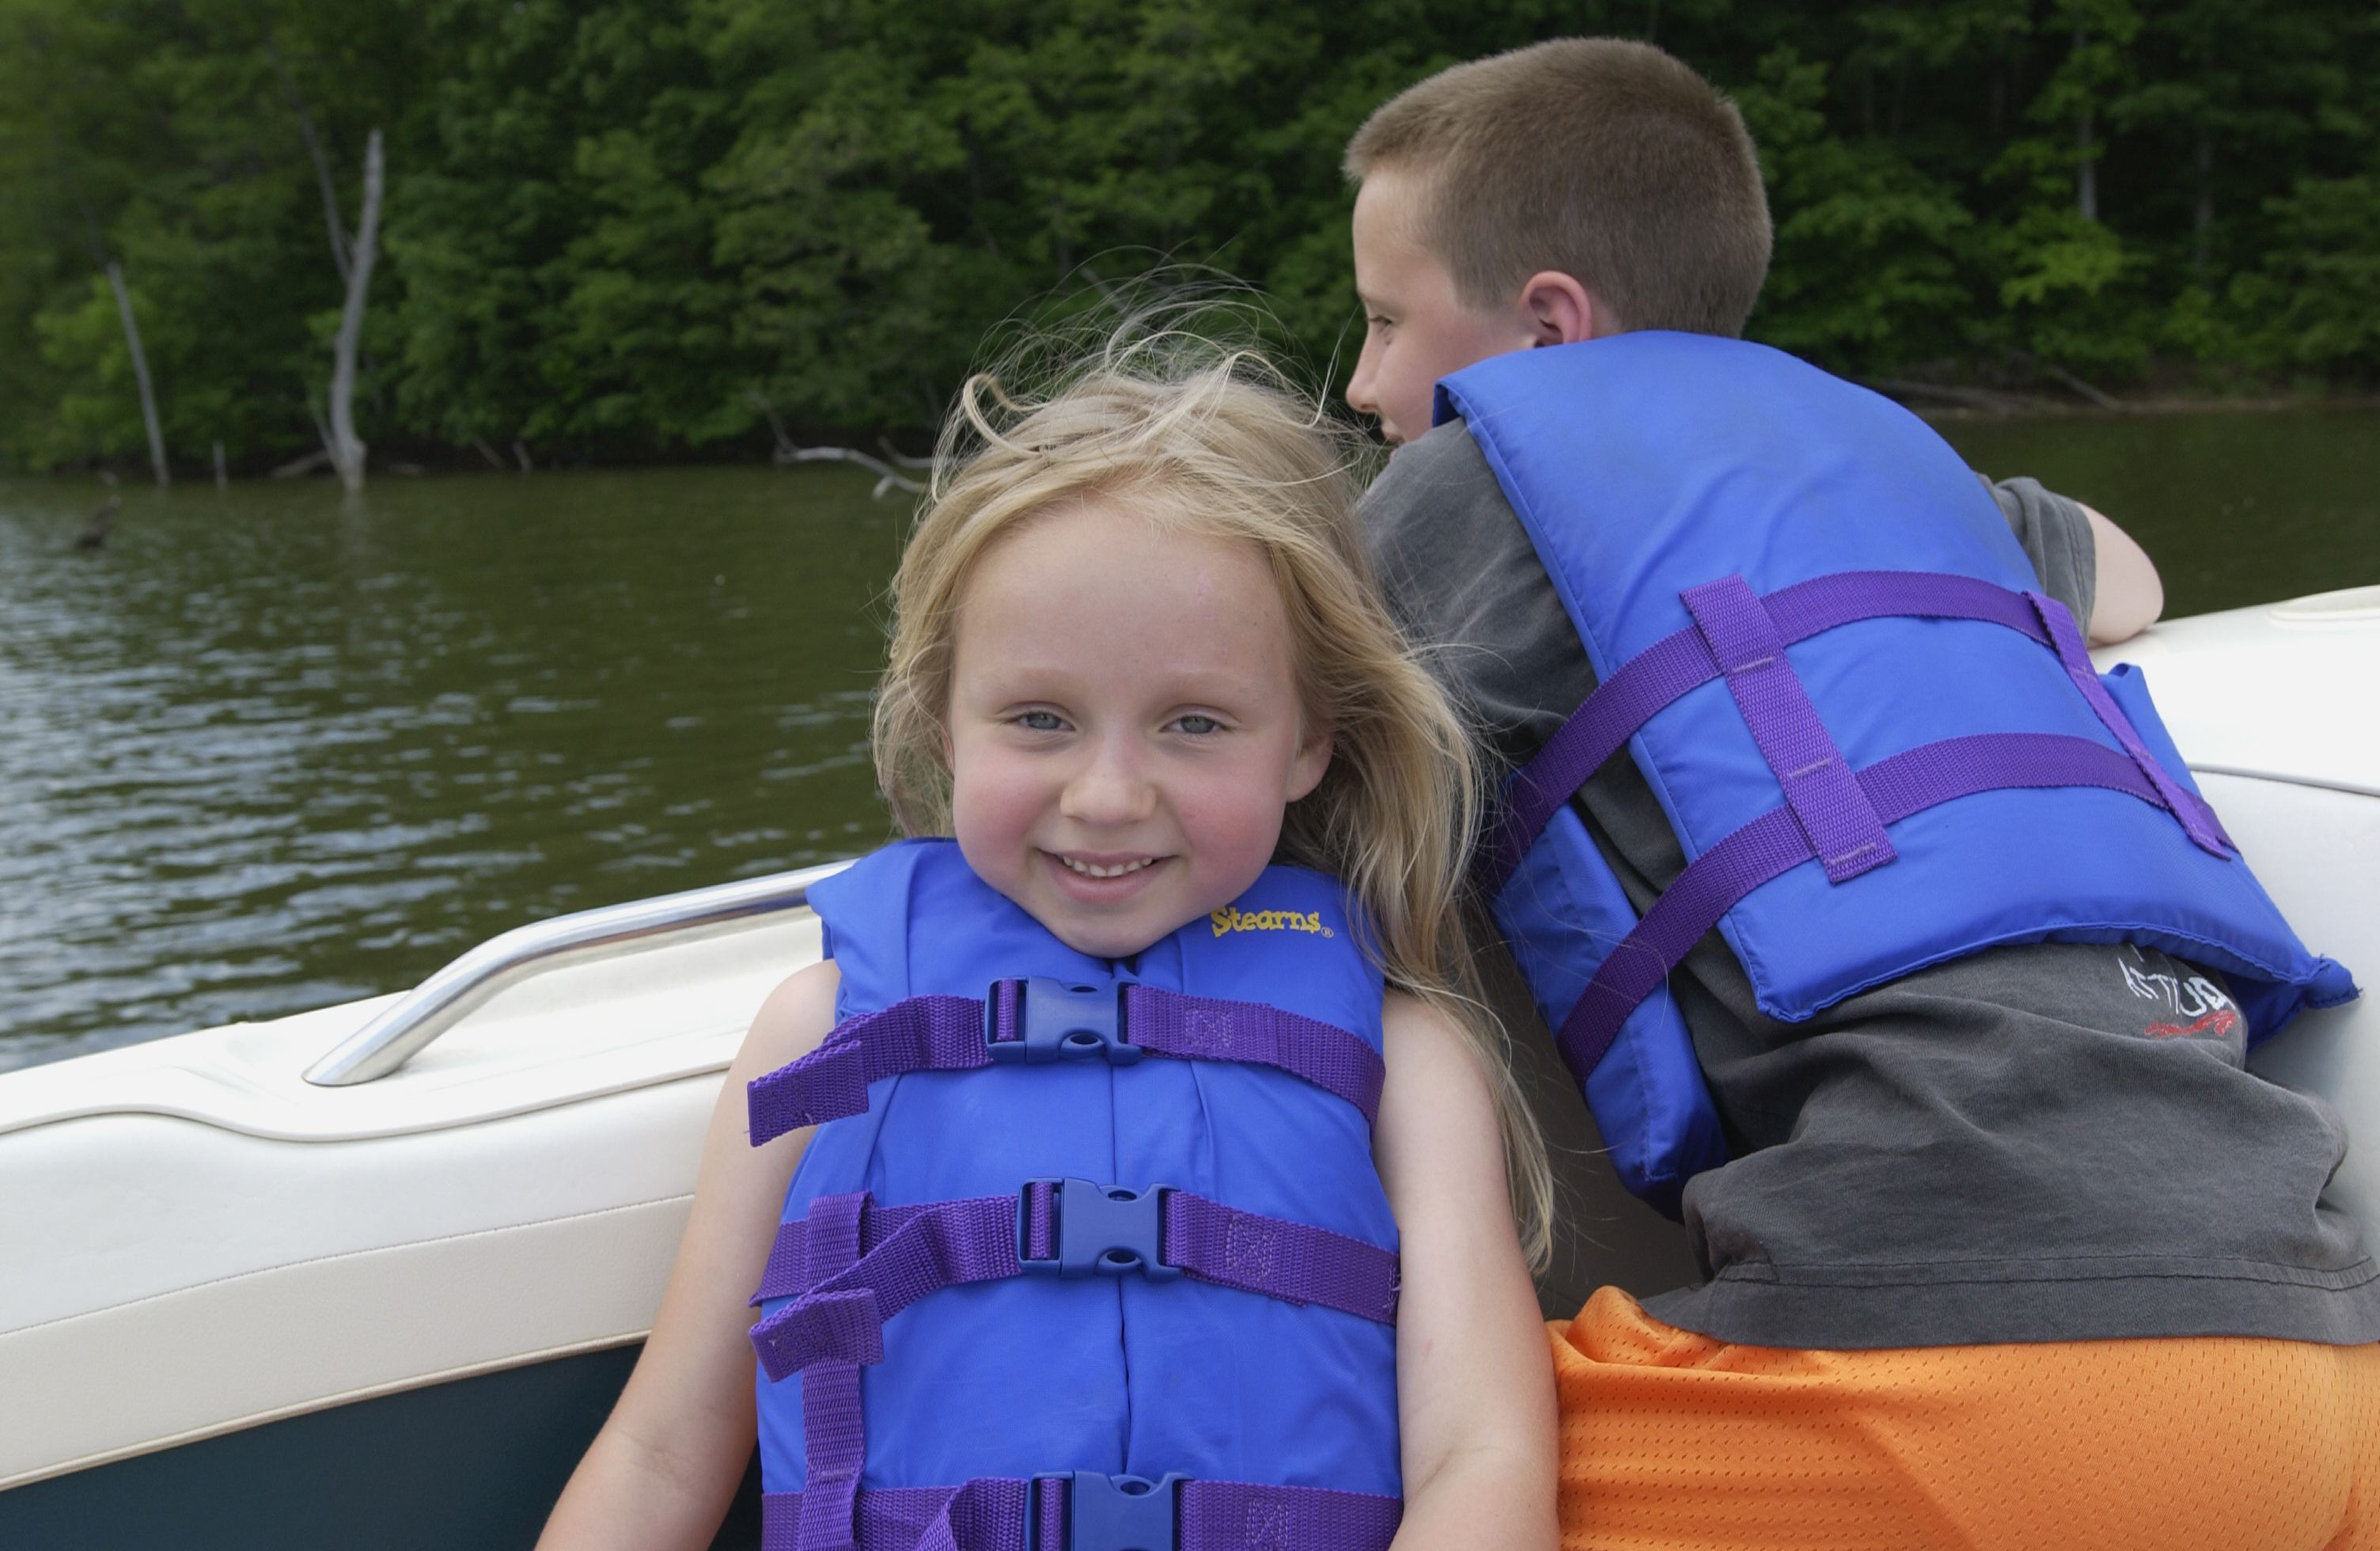 Children are wearing life jackets on boat